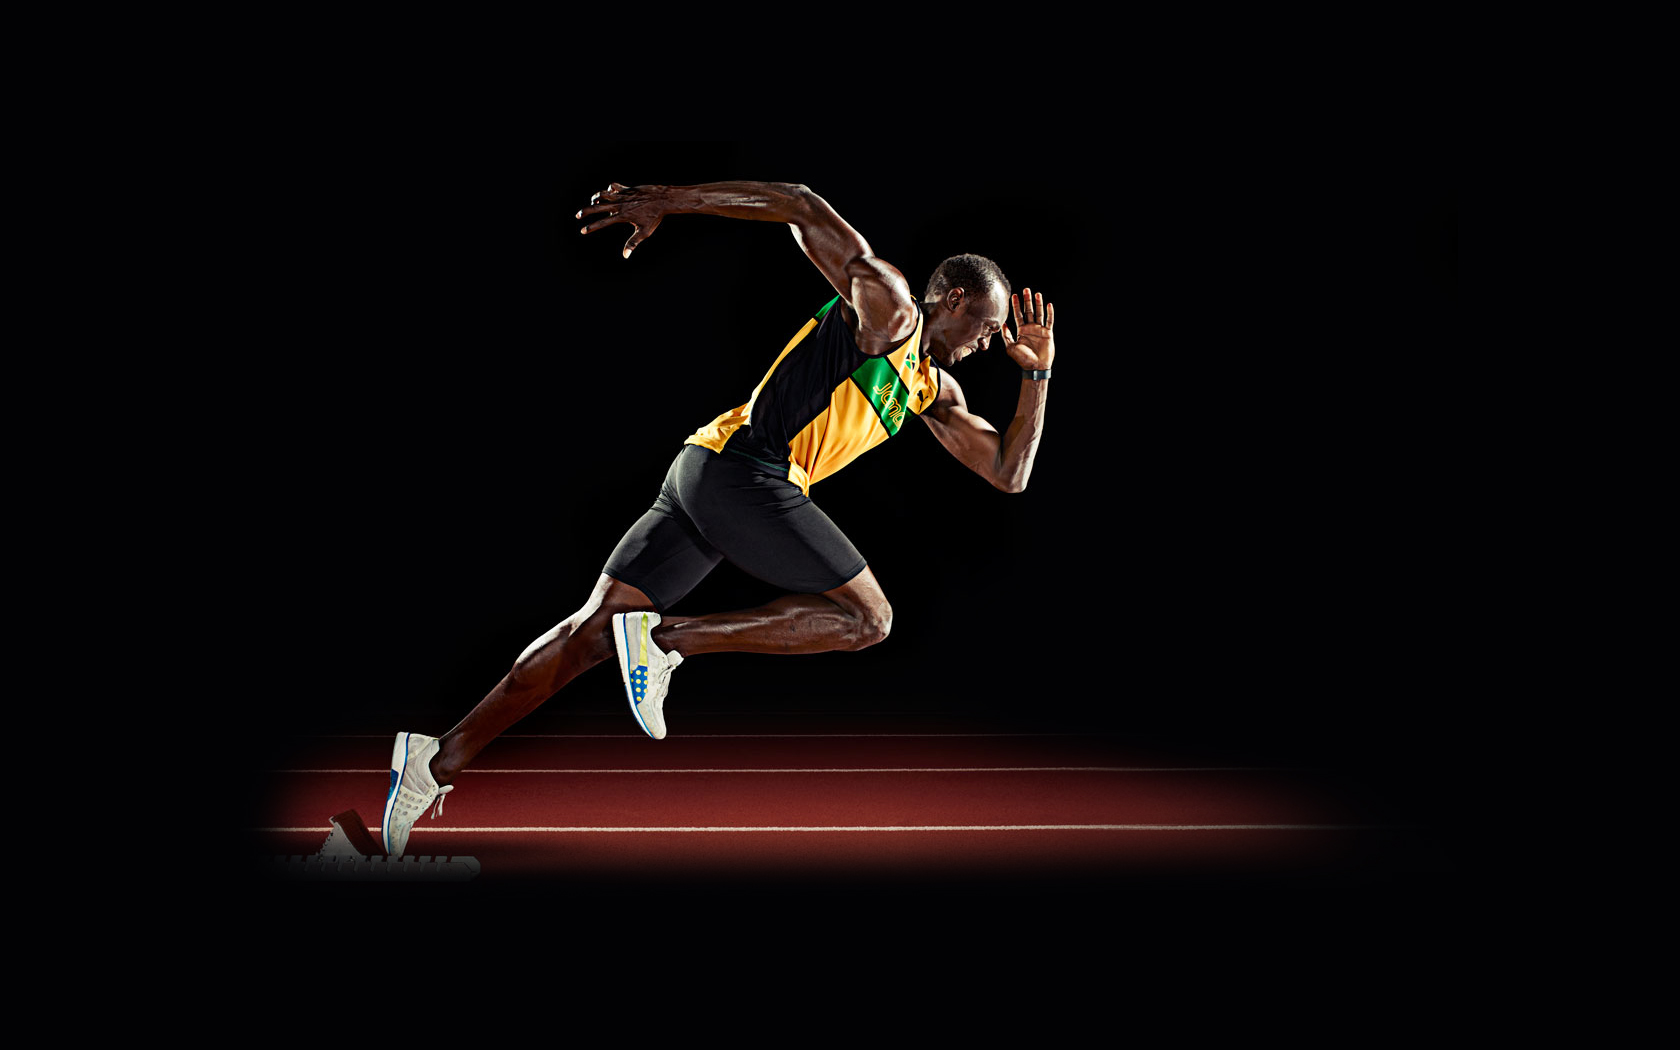 Usain Bolt Wallpapers